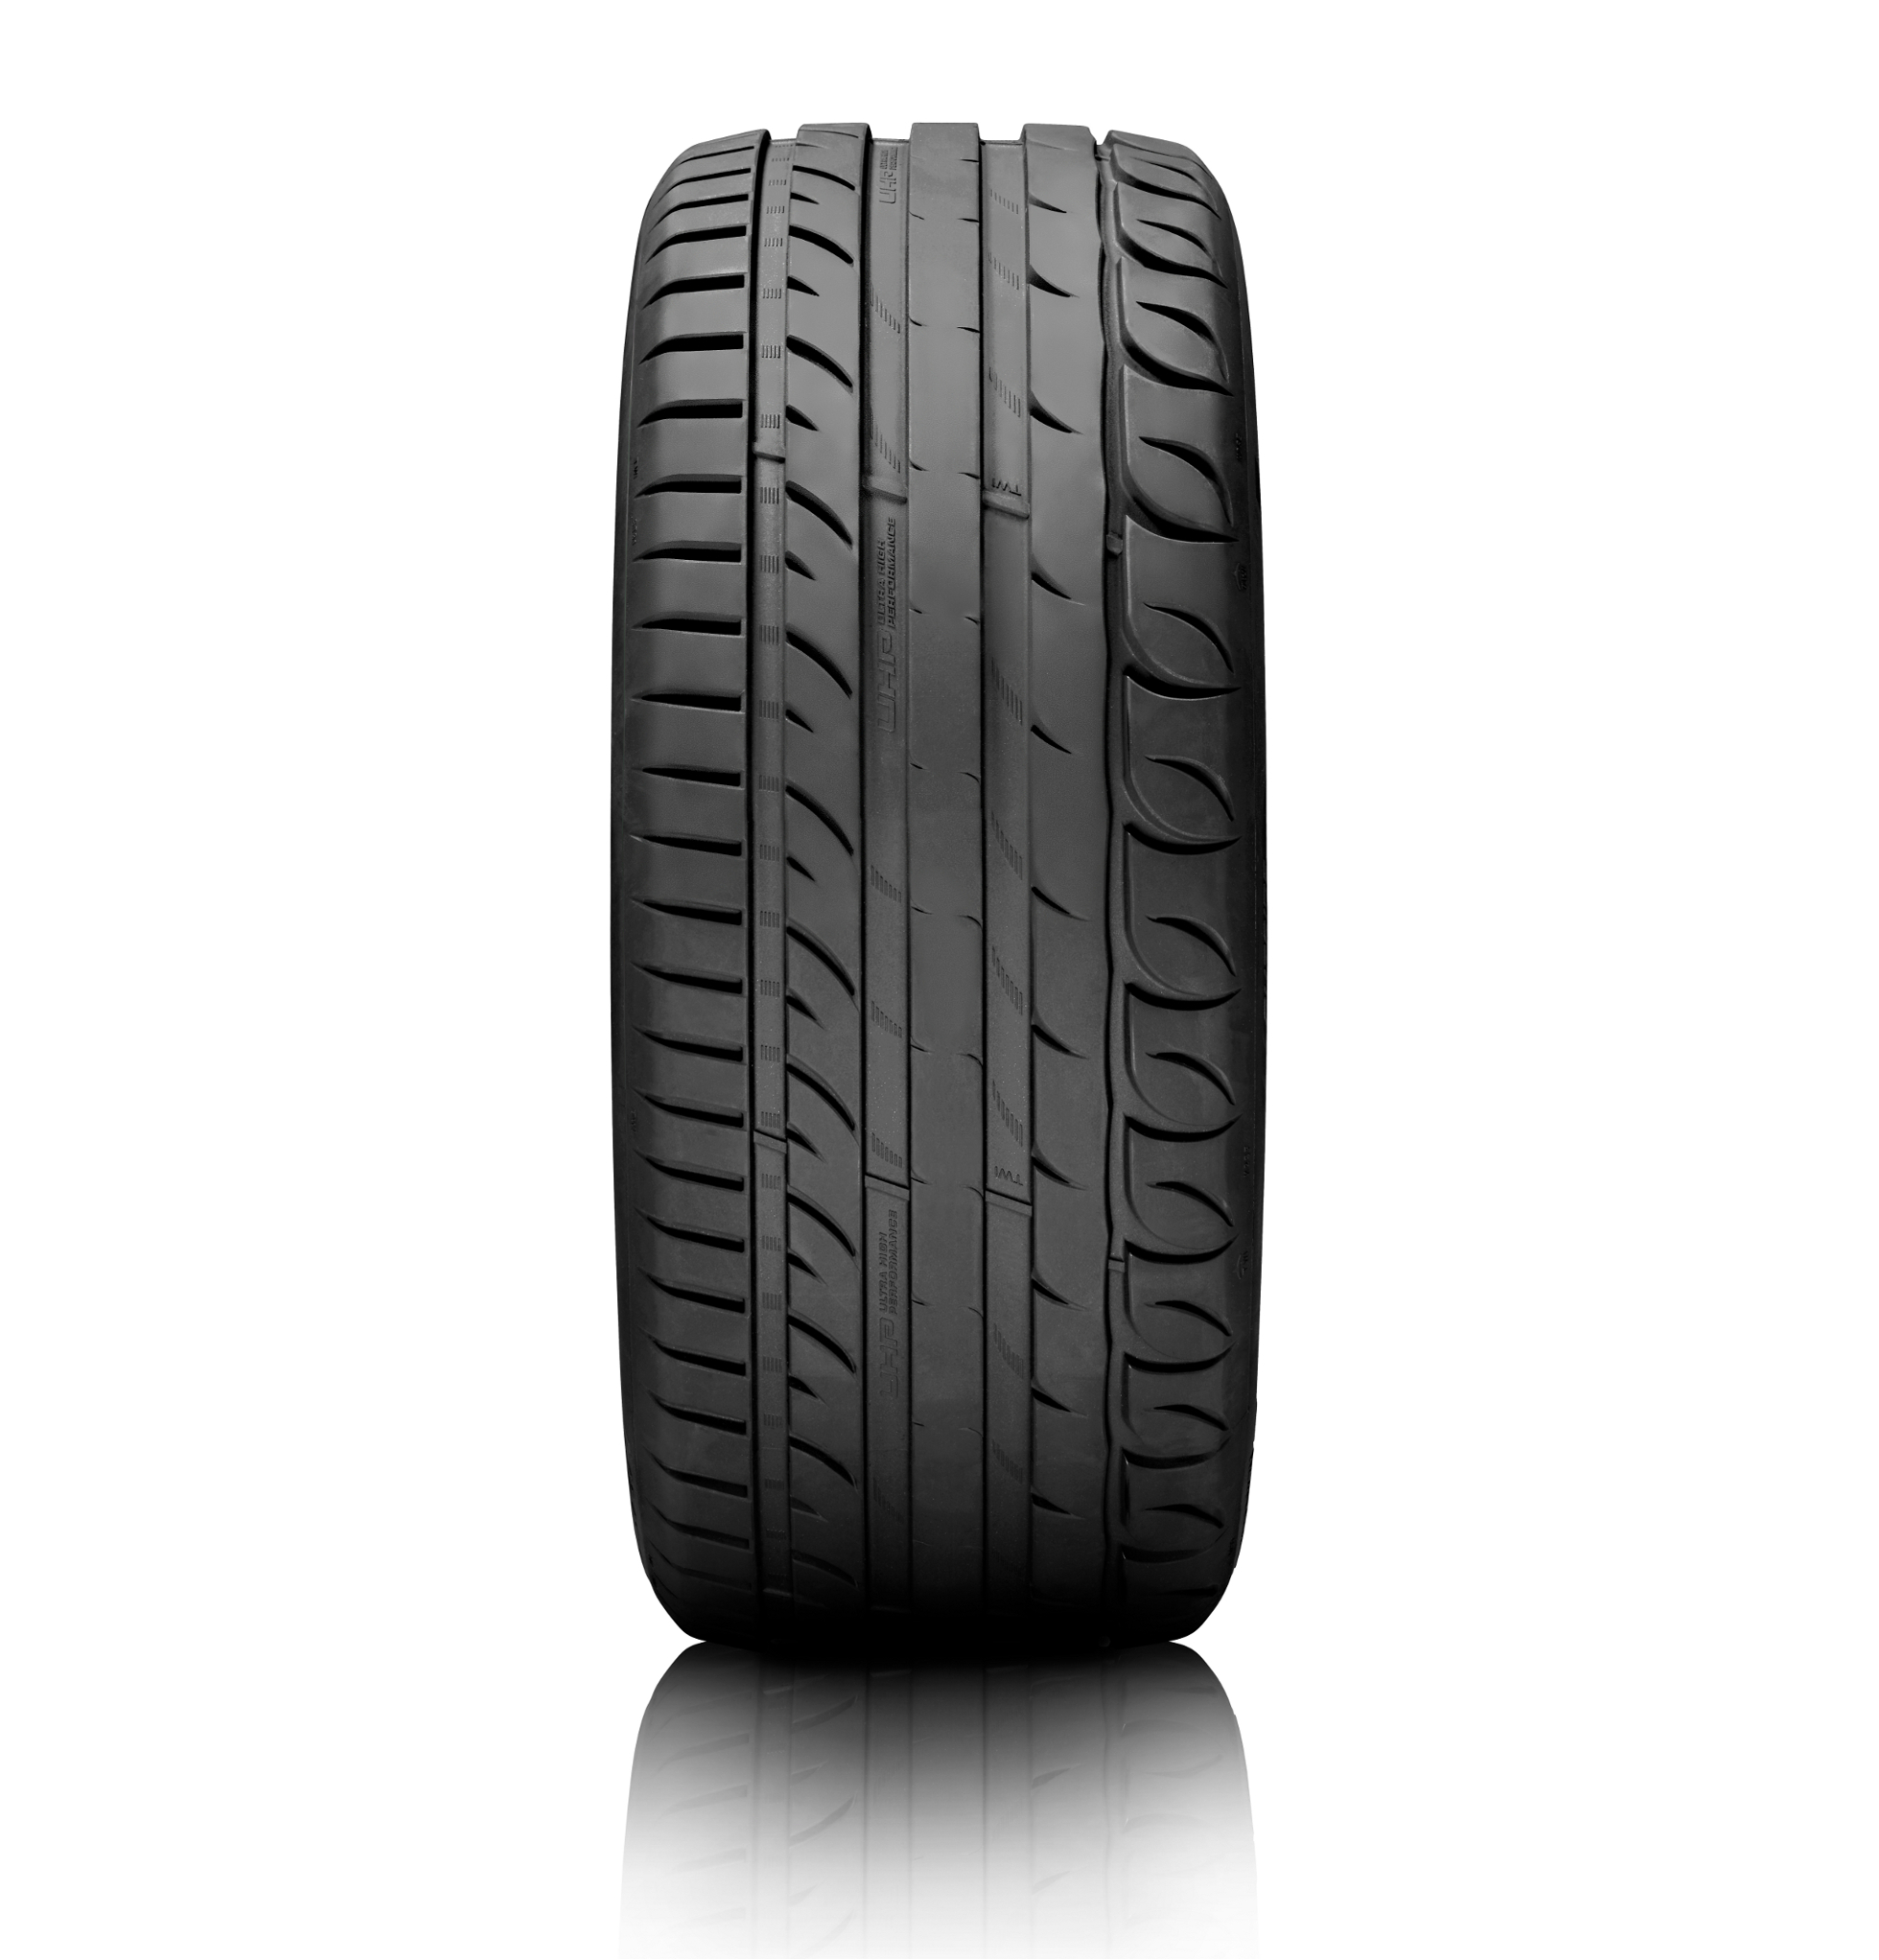 Gomme Autovettura Kormoran 215/50 R17 95W ULTRA HIGH PERFORMANCE XL Estivo